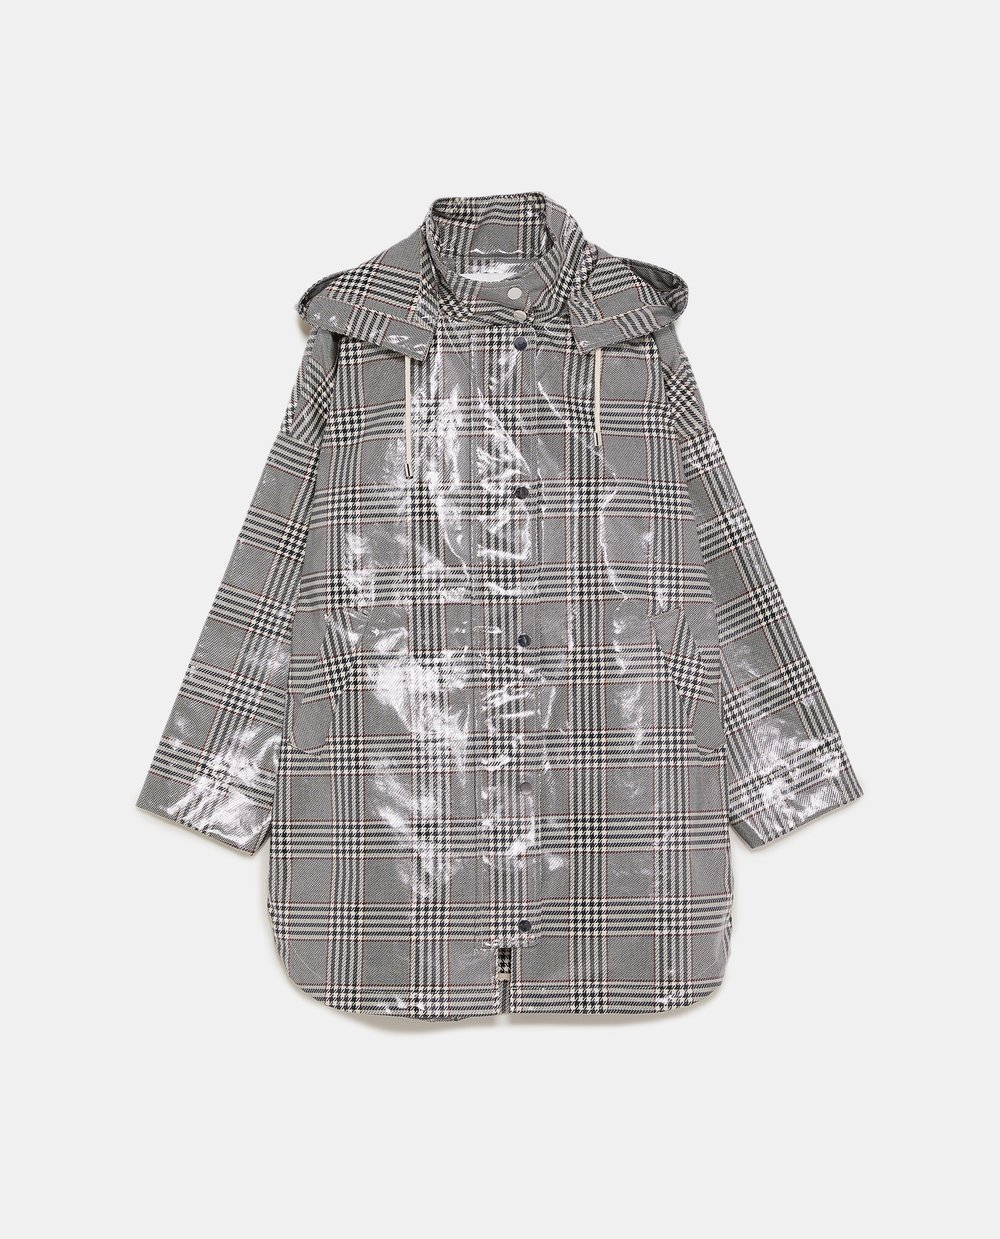 https://www.zara.com/ca/en/checked-waterproof-trench-coat-p00518064.html?v1=5922571&v2=719012